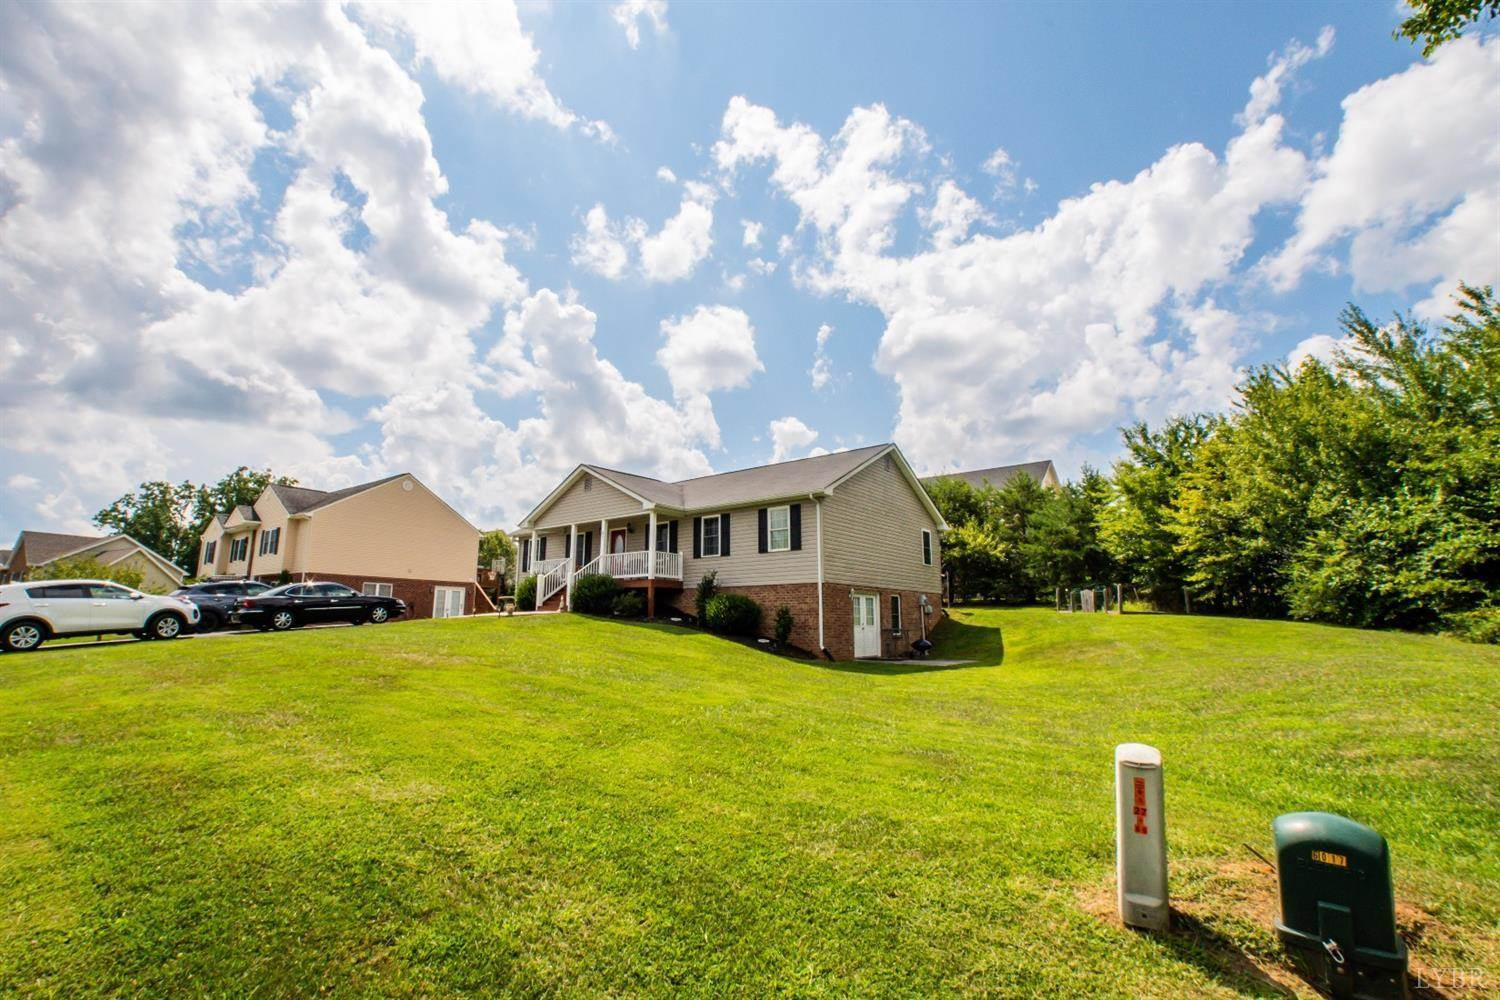 37 Cooper Way, Evington, VA 24550